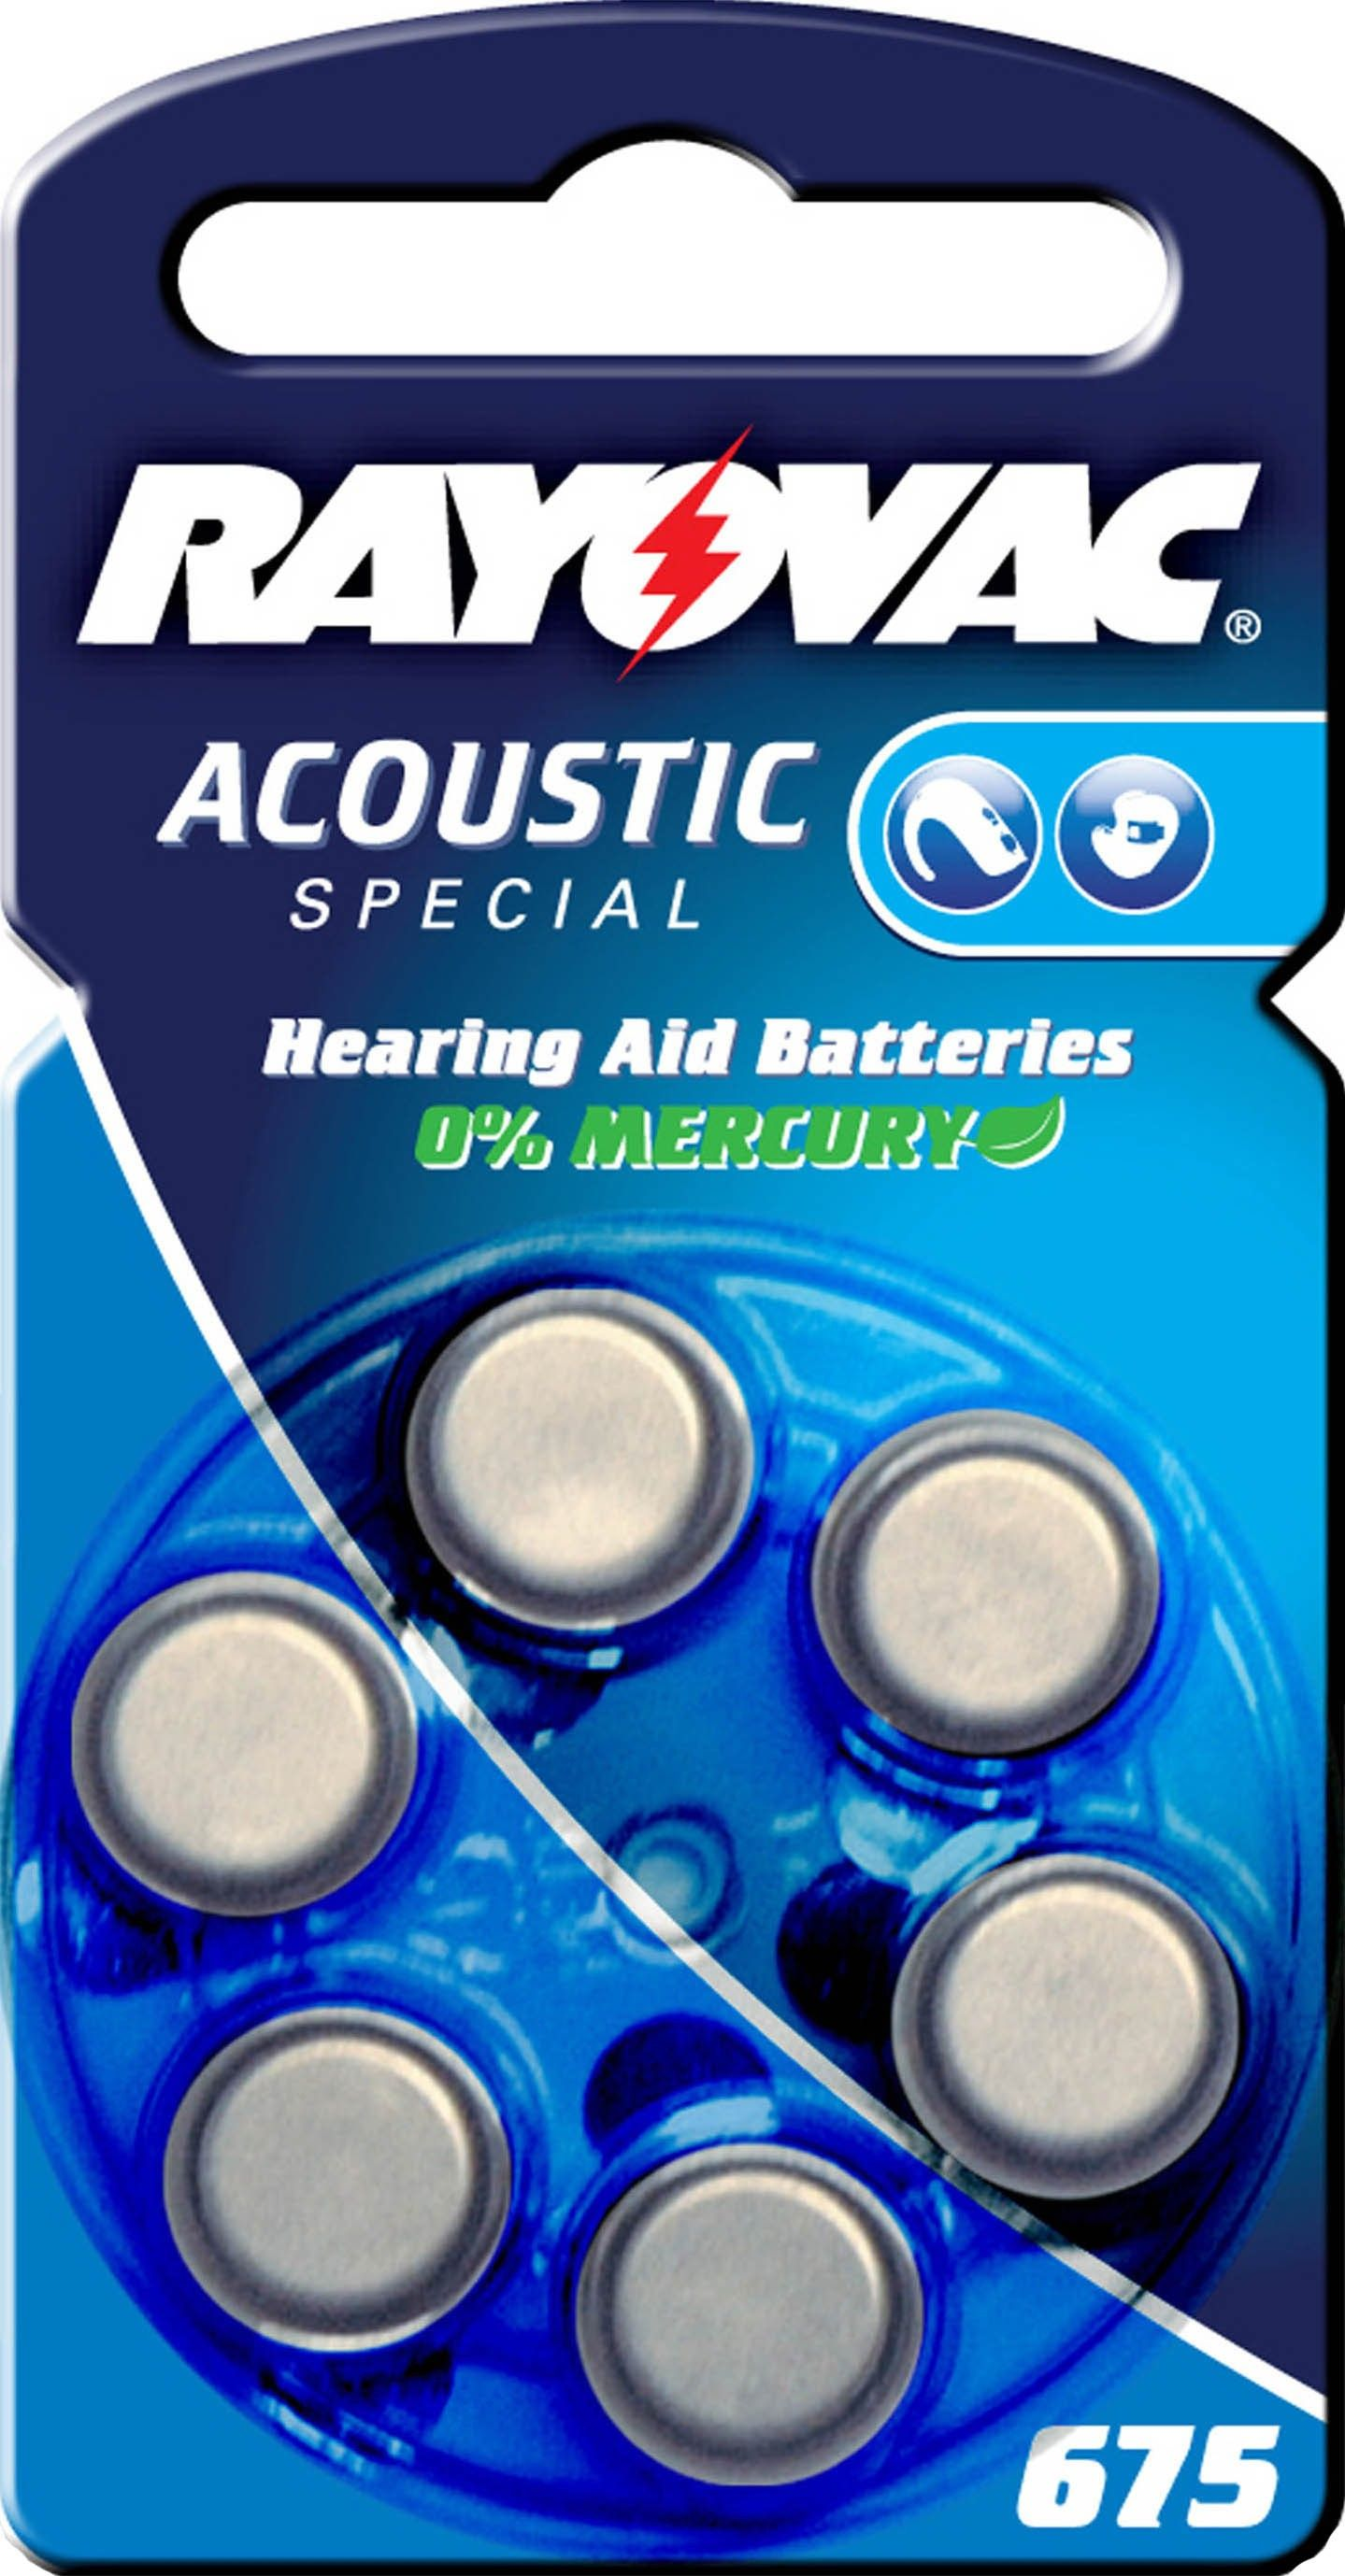 rayovac-acoustic-special